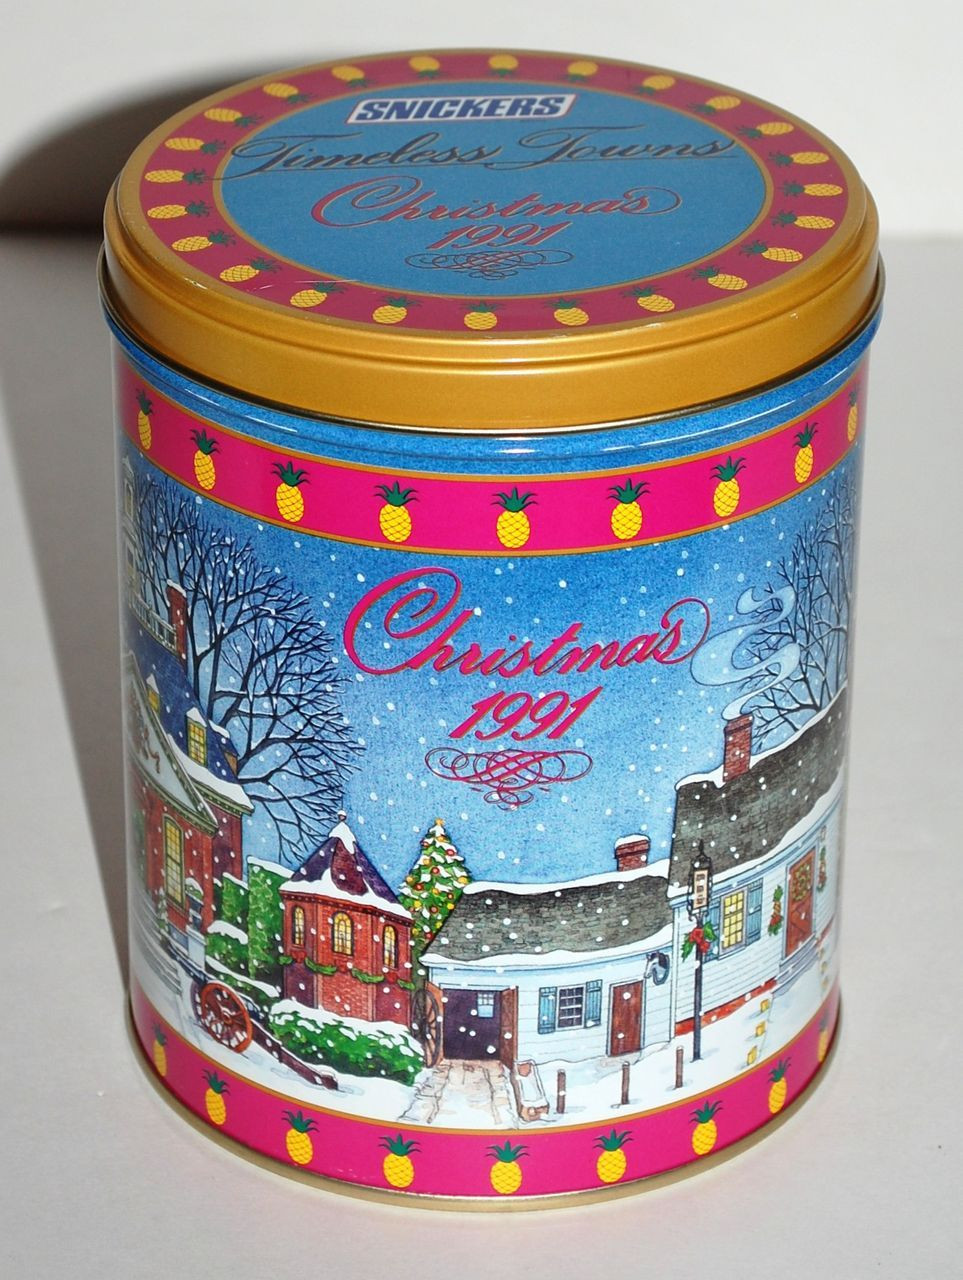 Christmas Candy Tins  1991 Snickers Timeless Towns Christmas Candy Tin from